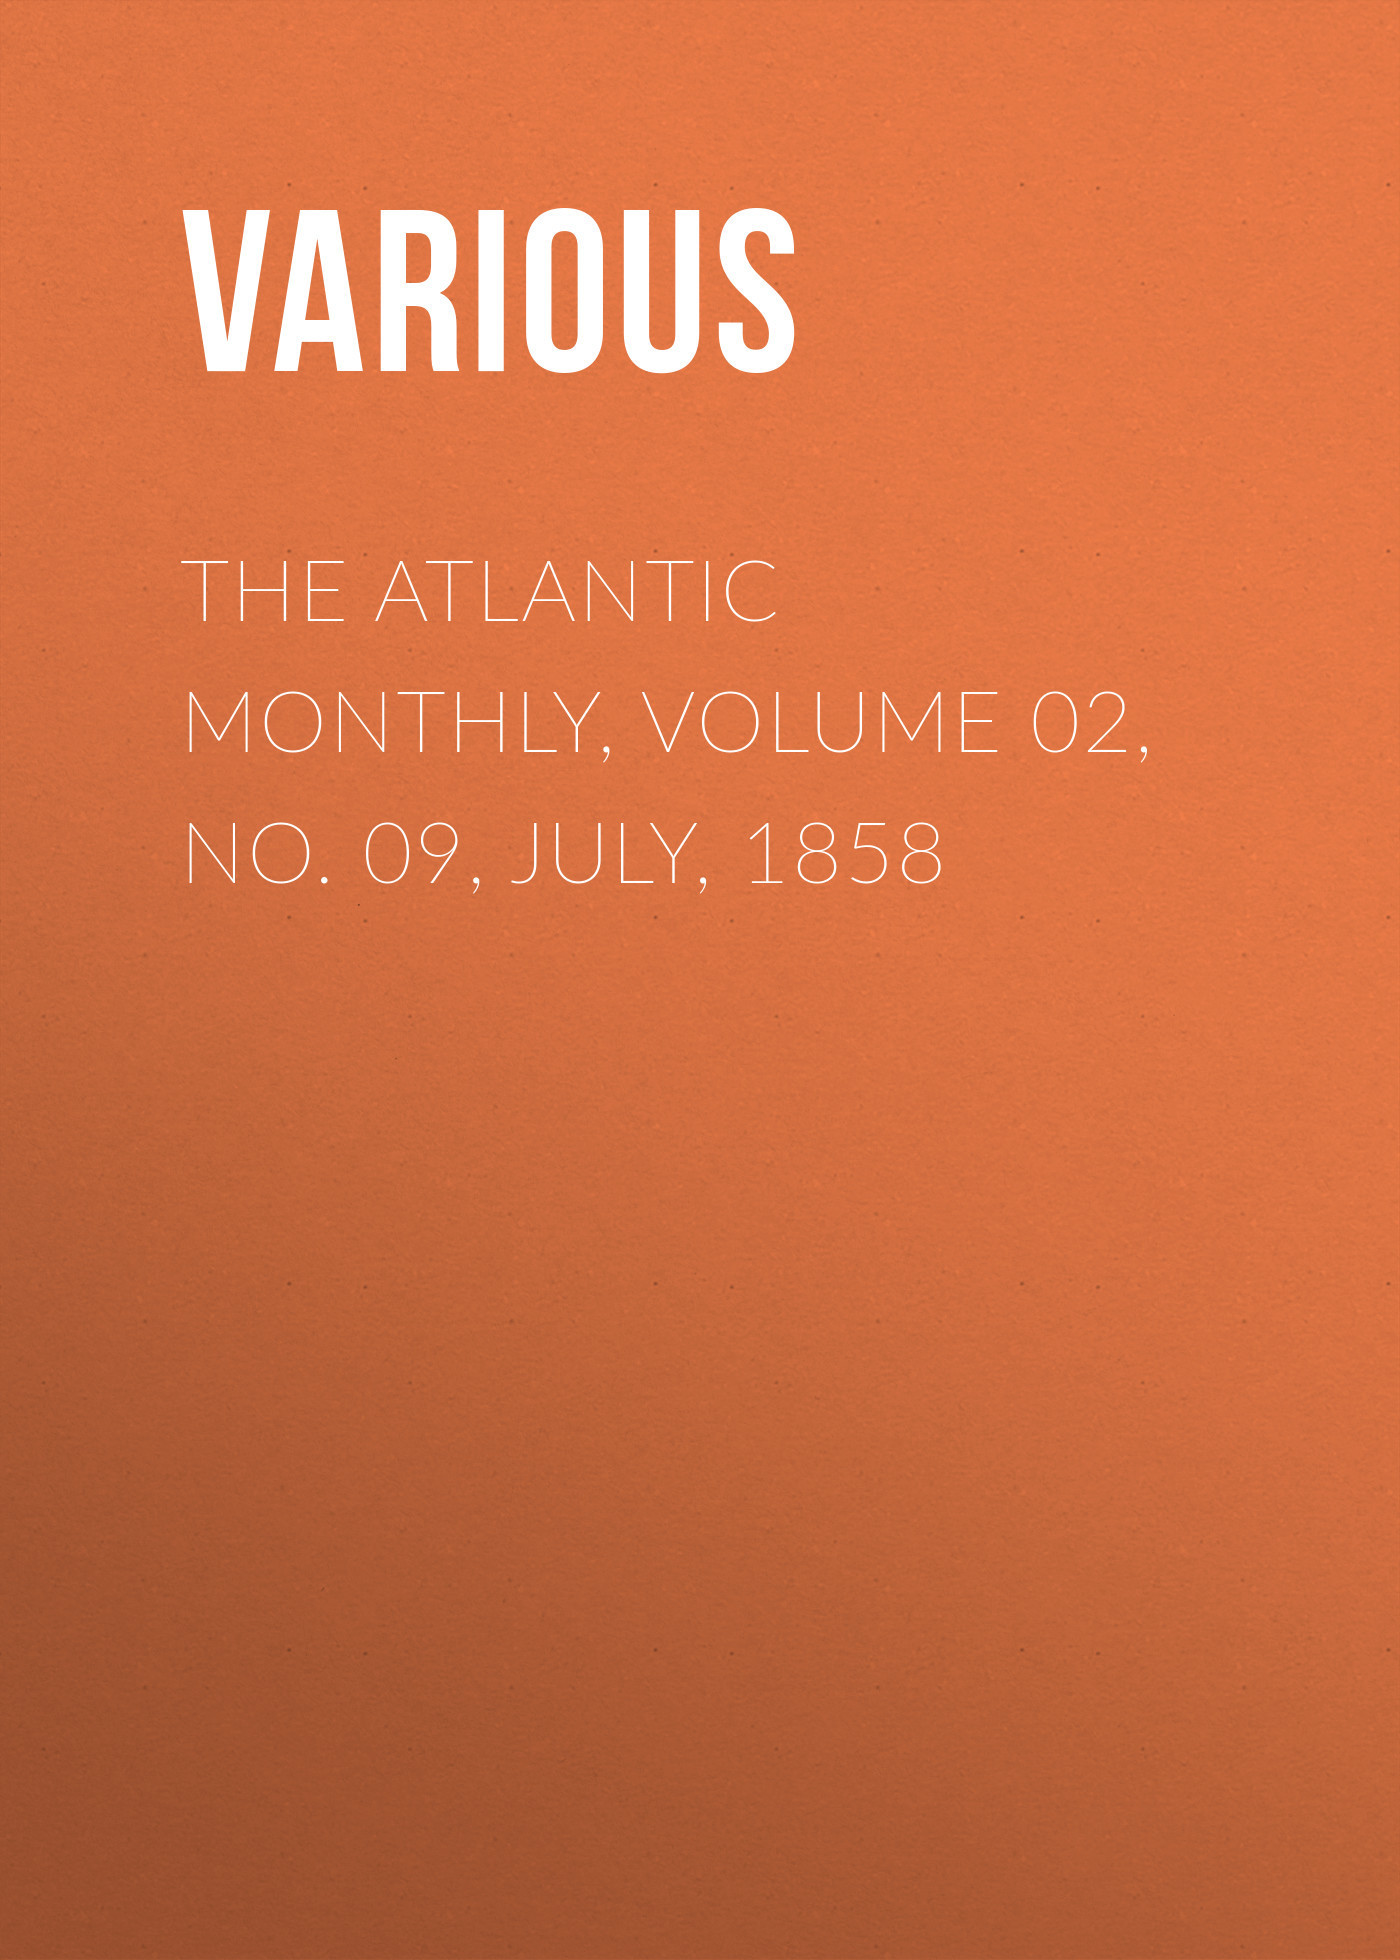 The Atlantic Monthly, Volume 02, No. 09, July, 1858